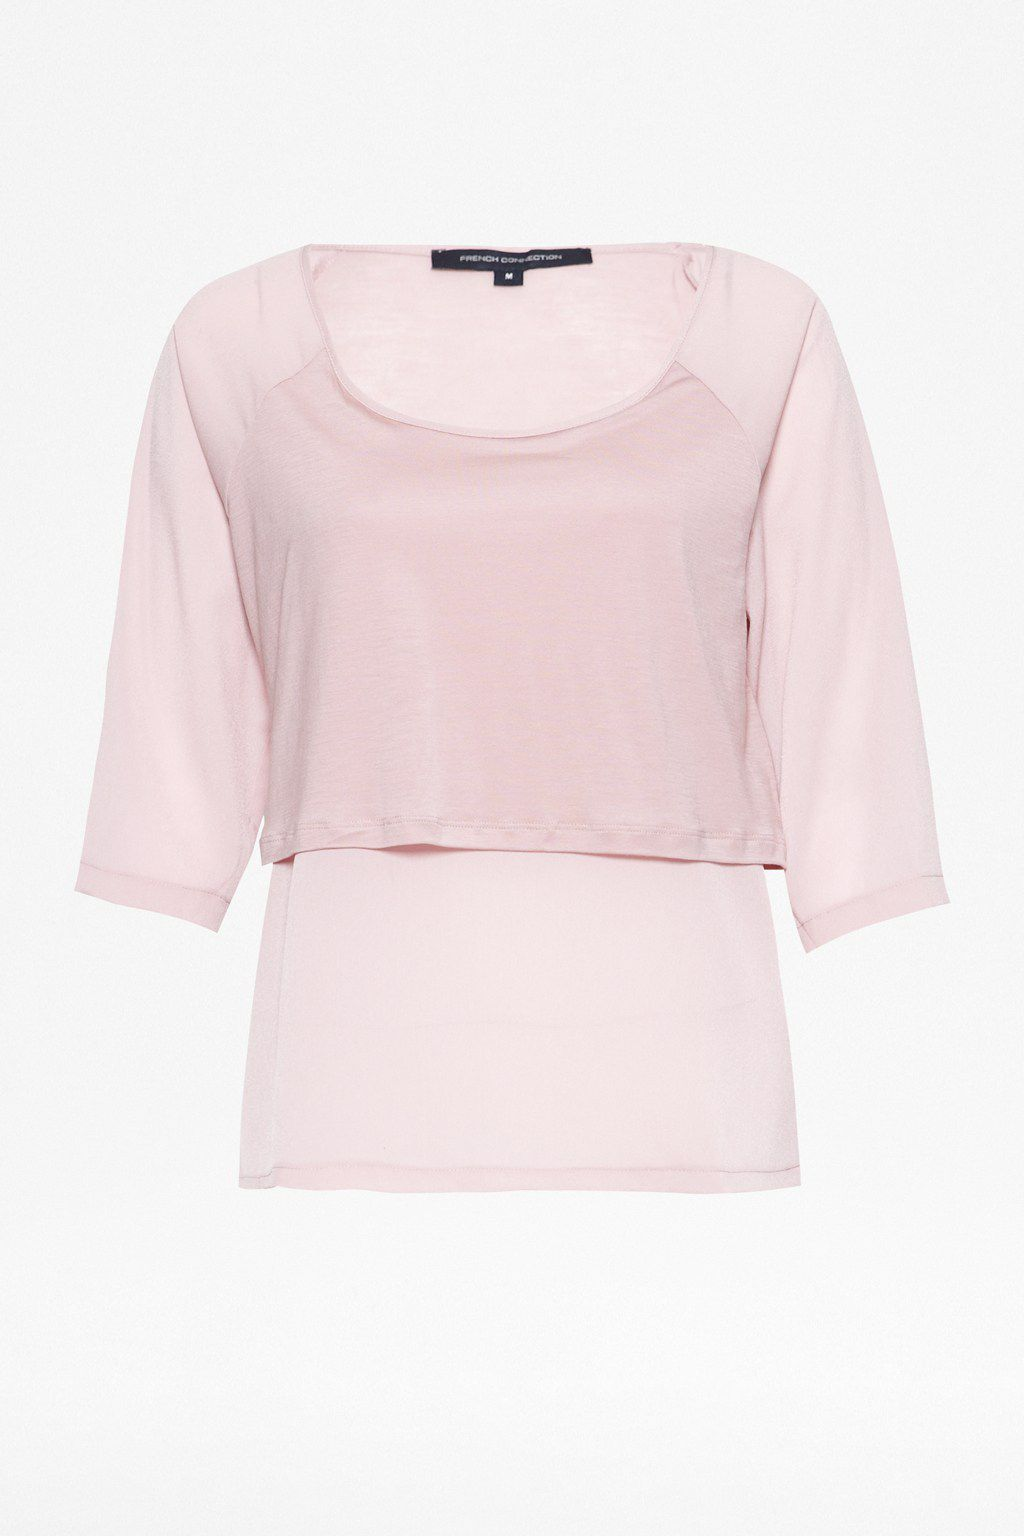 Classic polly plains layered top